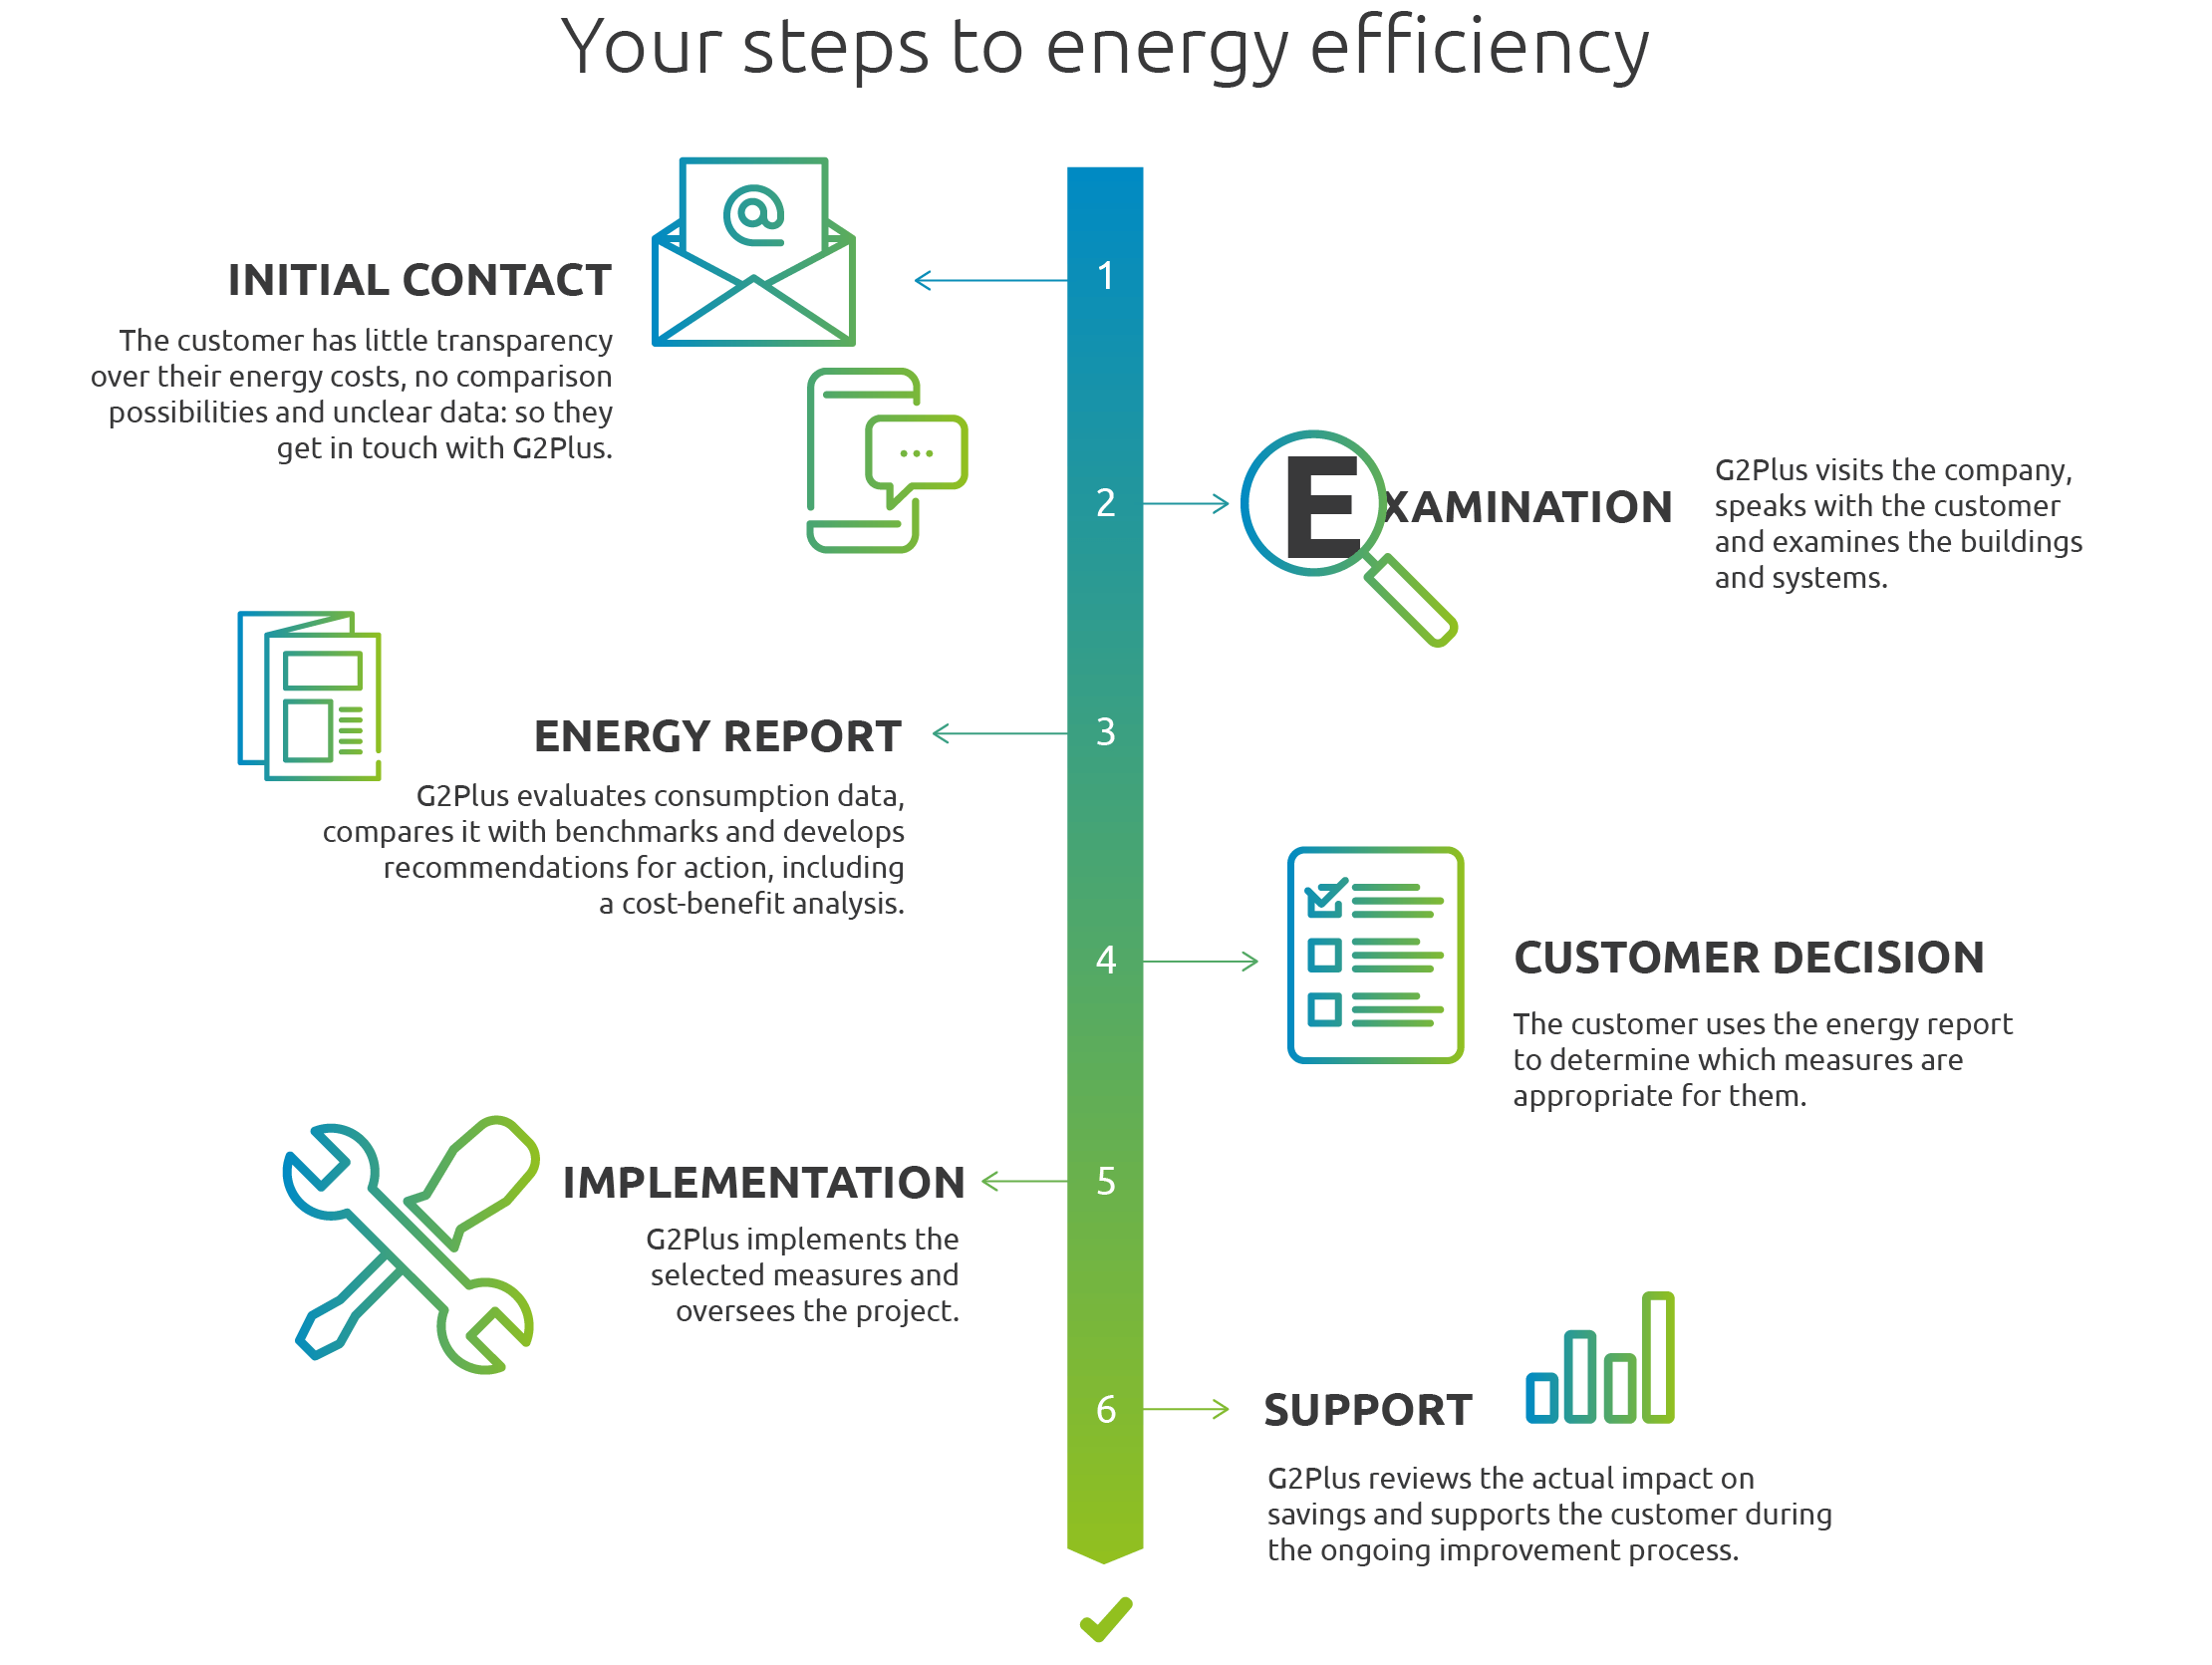 Our way to your energy efficiency